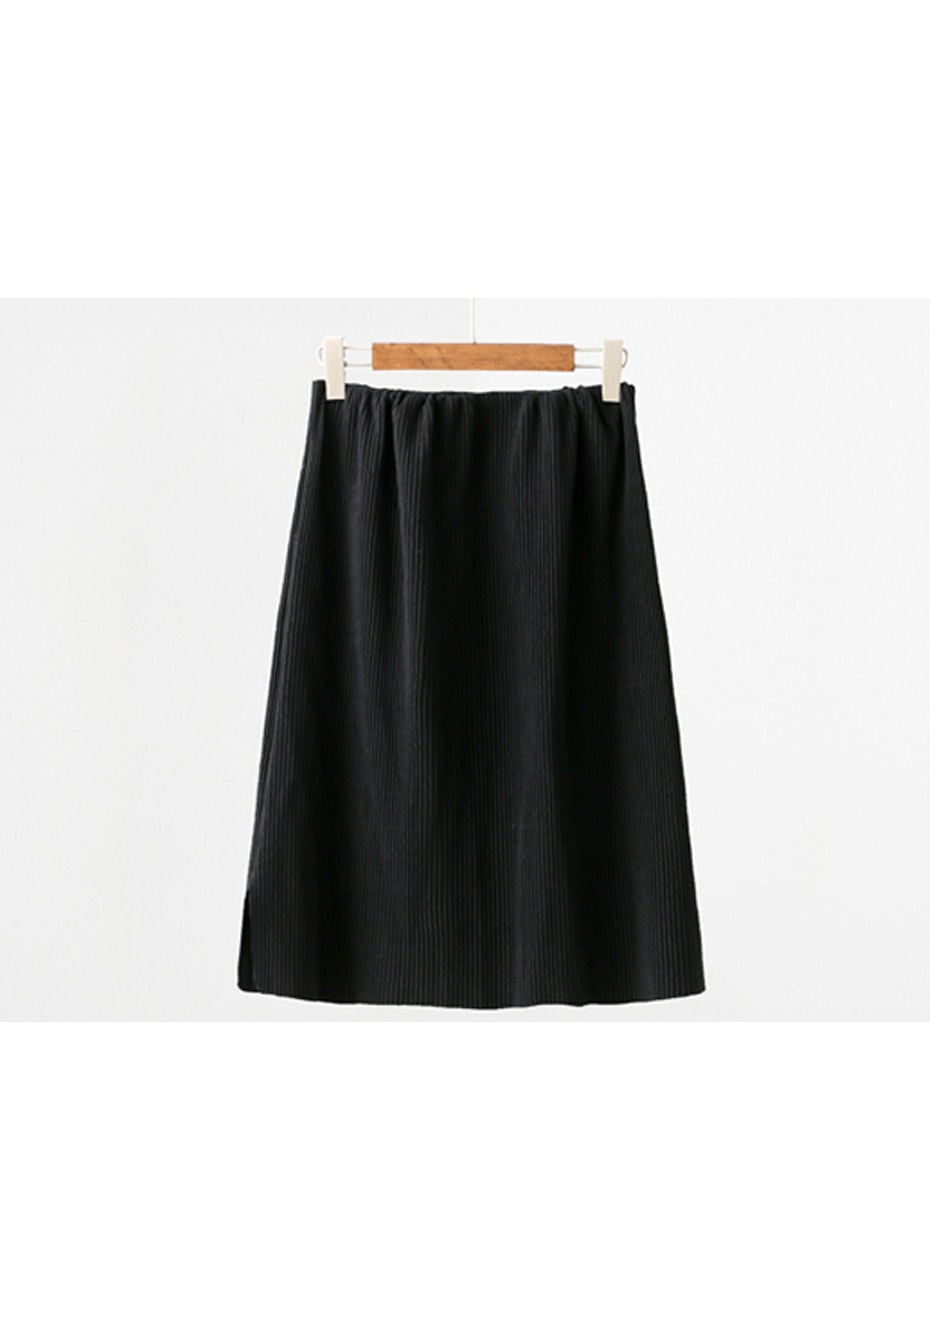 Dillan Knit Skirt  - Black